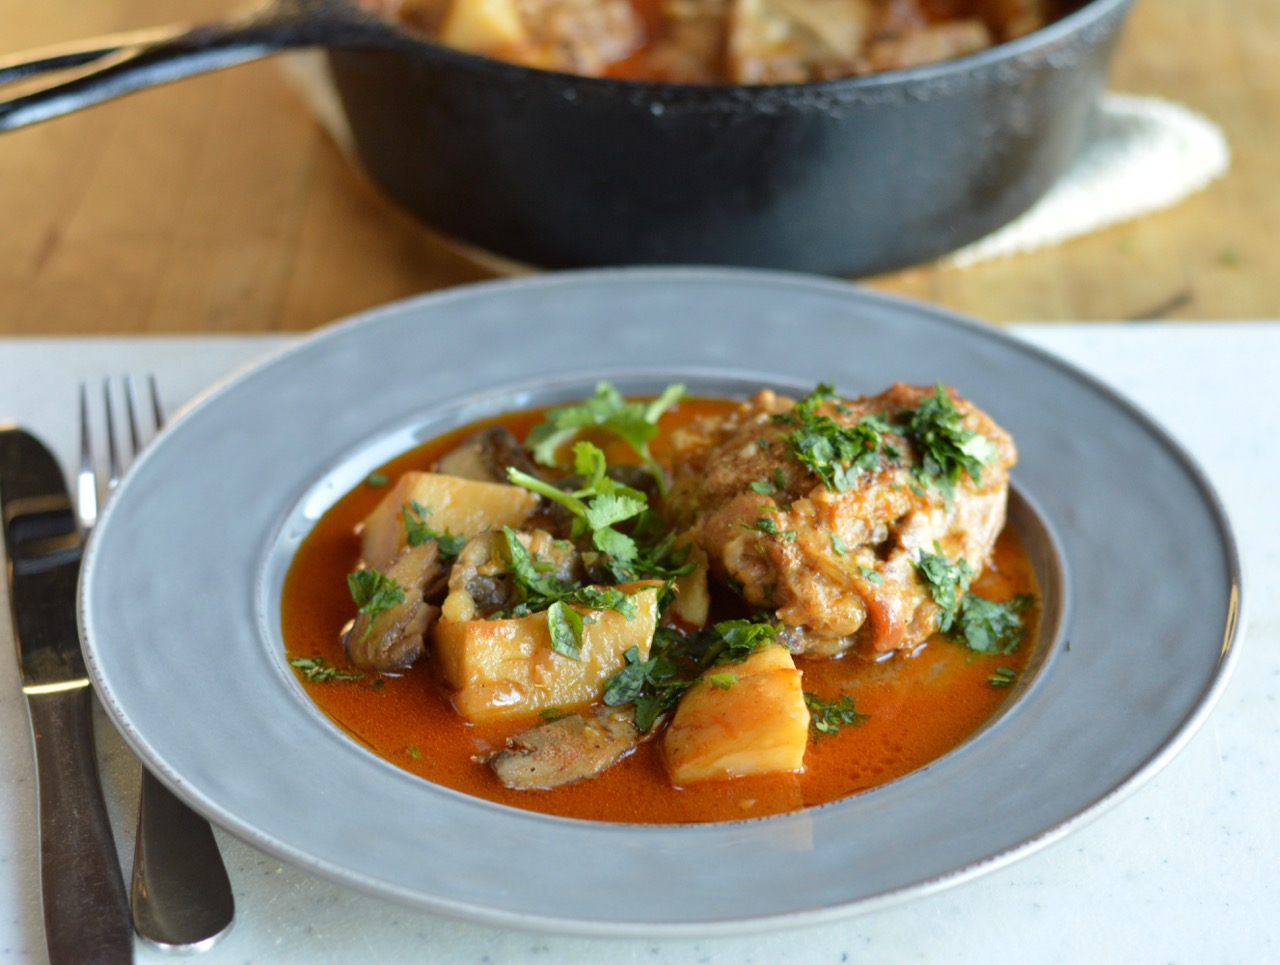 Coconut Braised Chicken with Mushrooms and Potatoes